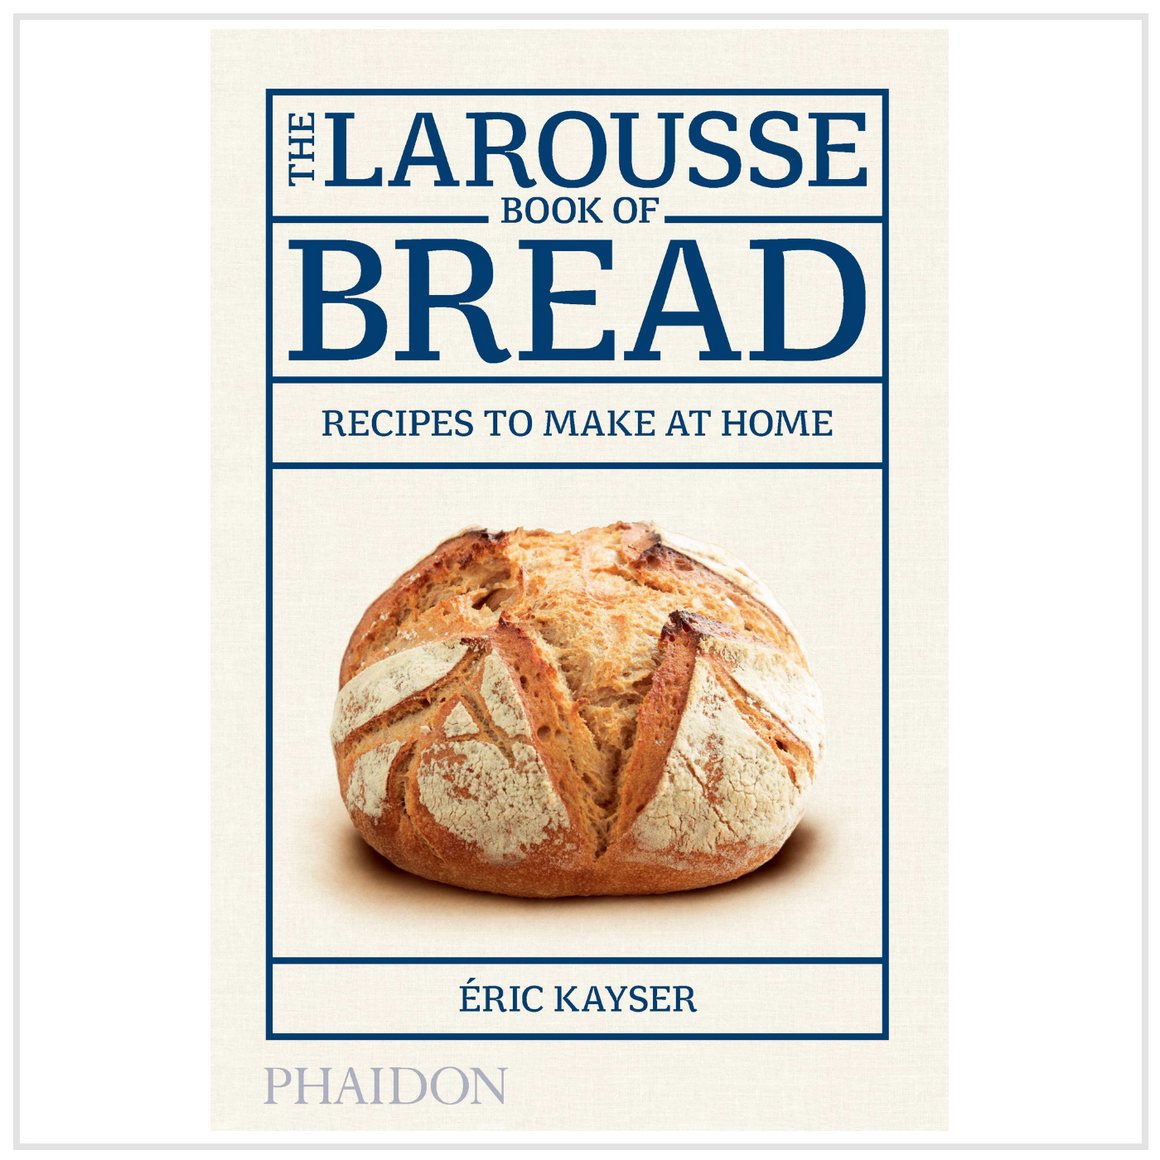 The Larousse Book of Bread Recipes